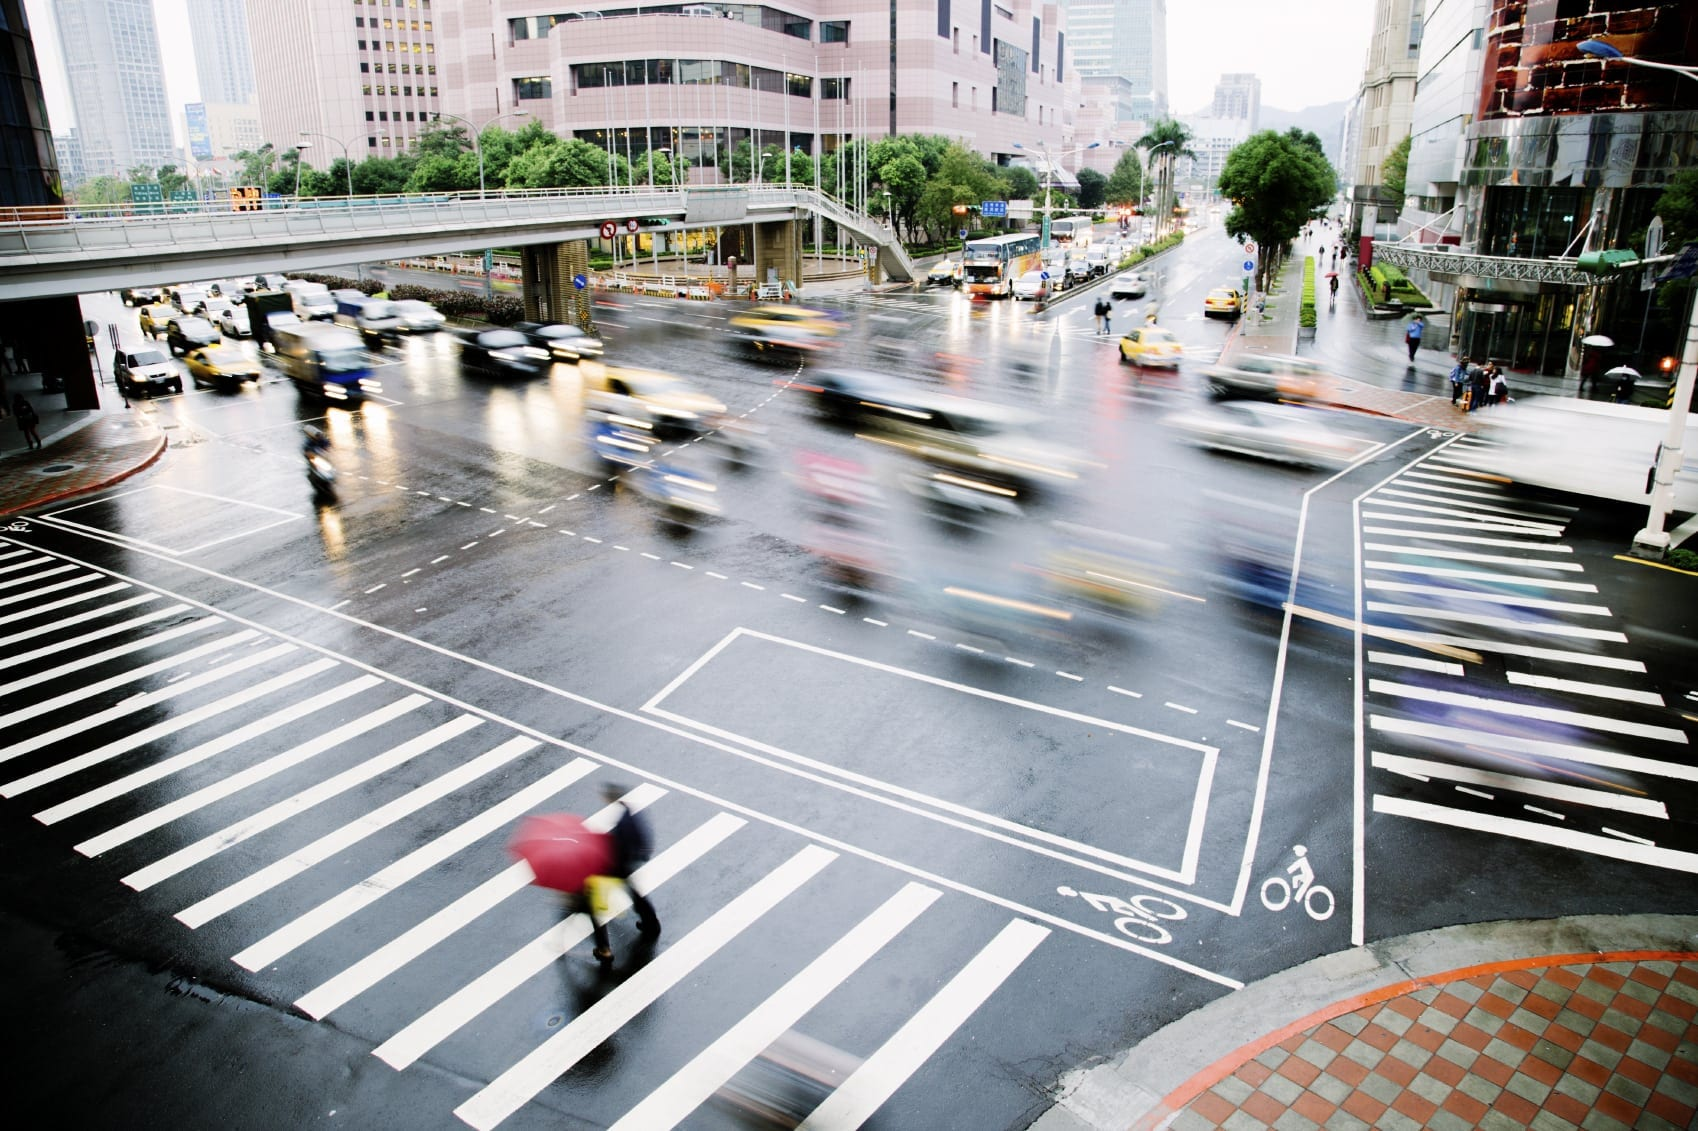 Busy Intersection In A Large City Stock Photo